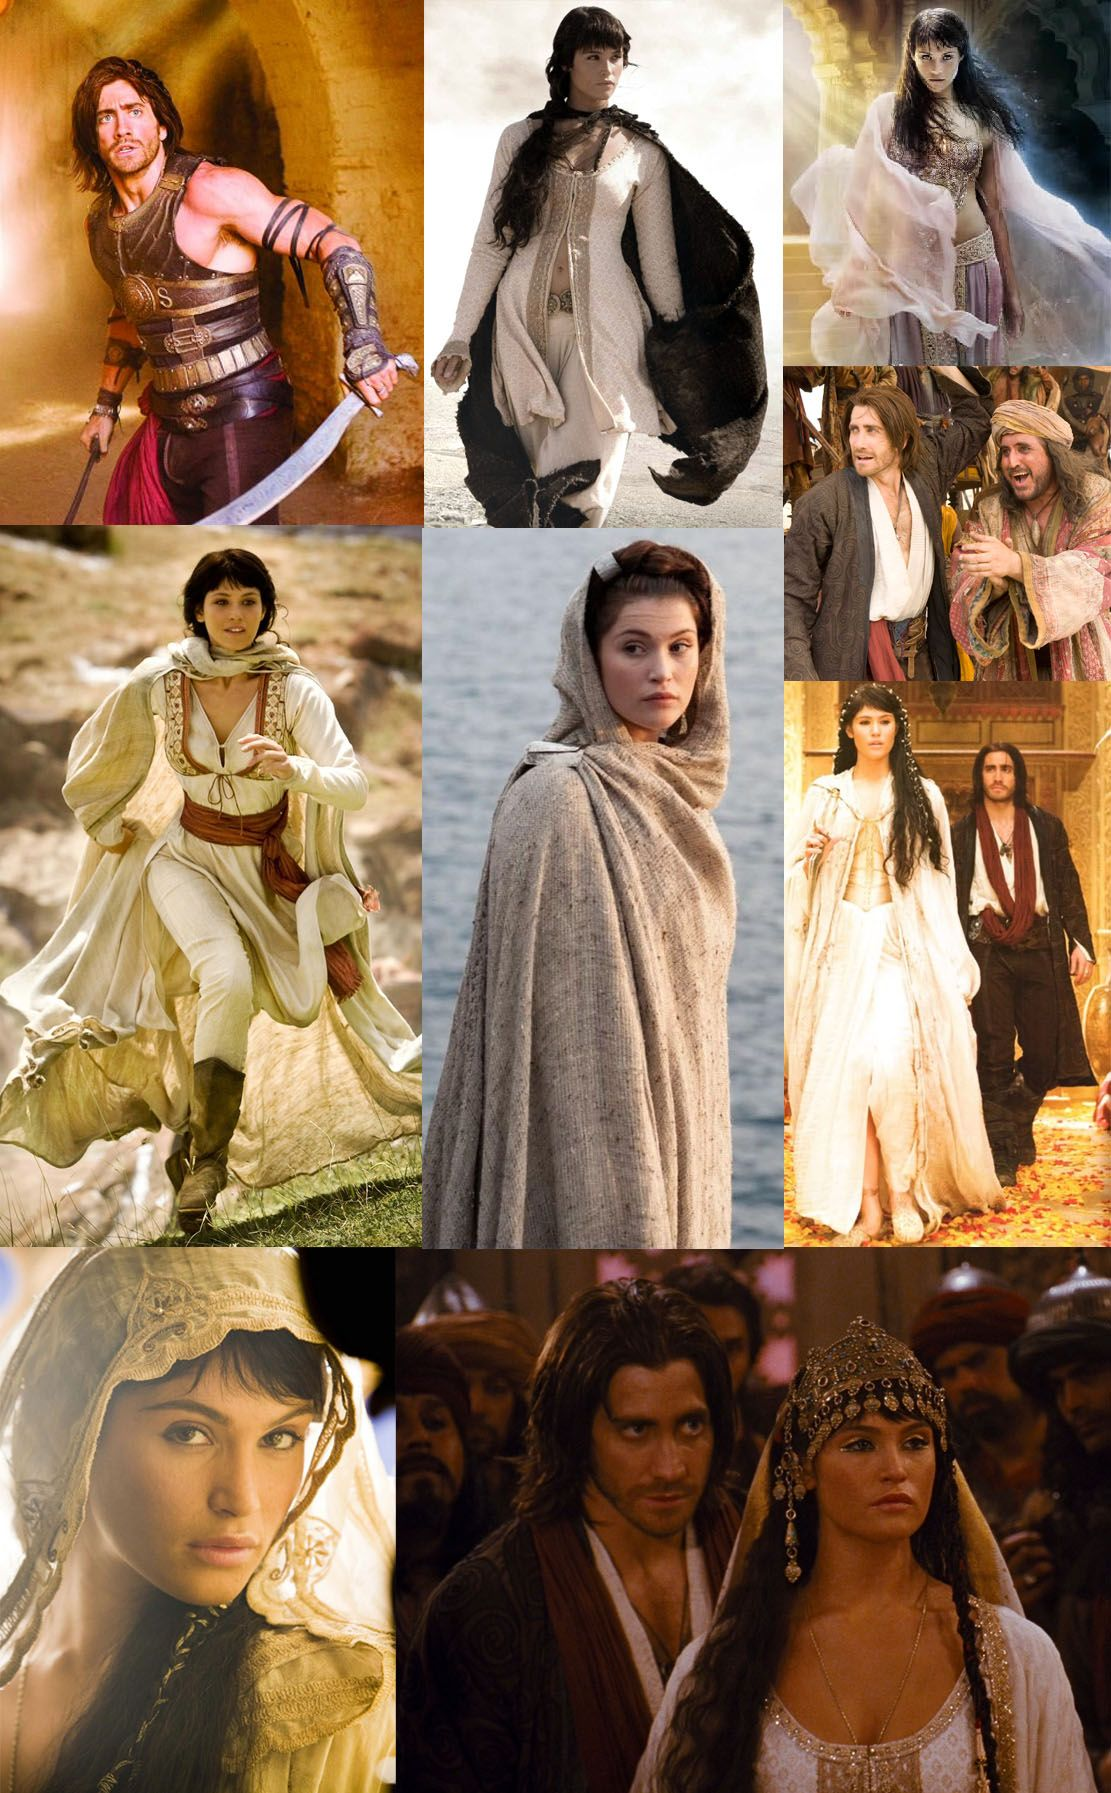 Prince Of Persia The Sands Of Time Prince Of Persia Movie Prince Of Persia Disney Live Action Movies